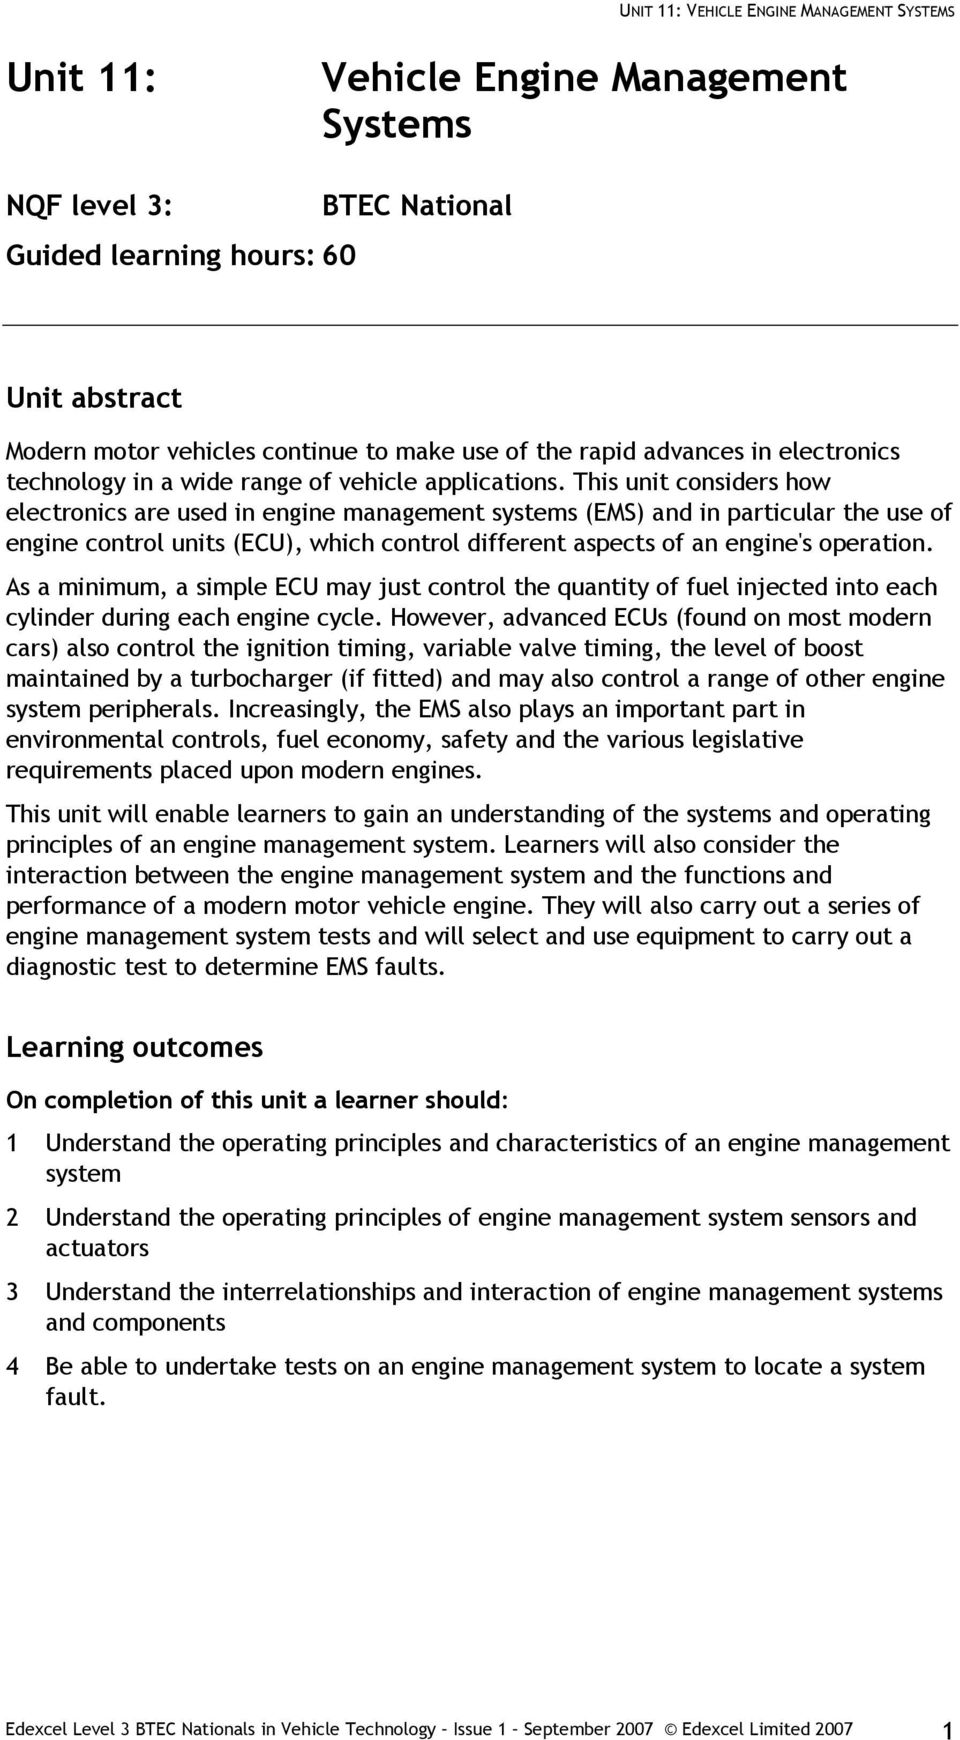 This unit considers how electronics are used in engine management systems (EMS) and in particular the use of engine control units (ECU), which control different aspects of an engine's operation.